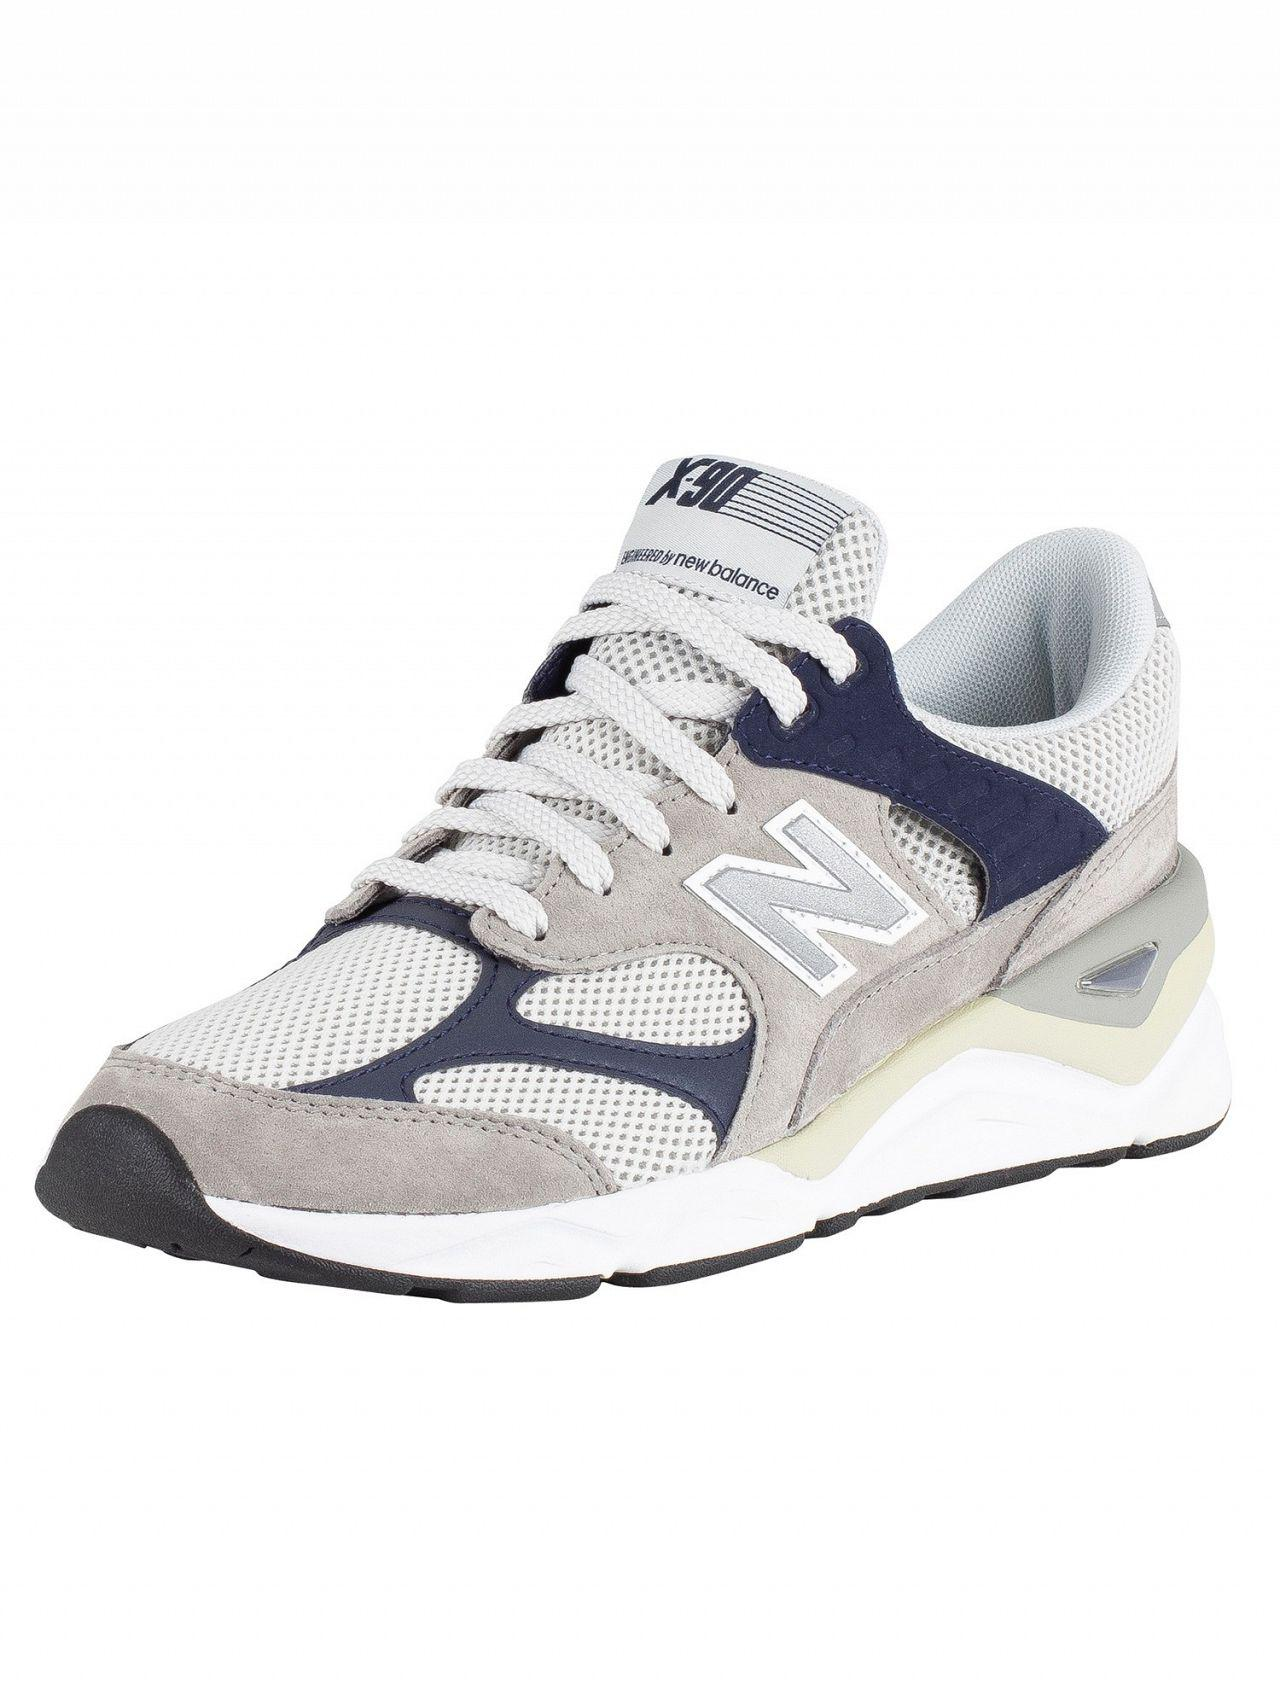 45a7893bc242 New Balance Grey/navy X-90 Suede Trainers in Gray for Men - Lyst